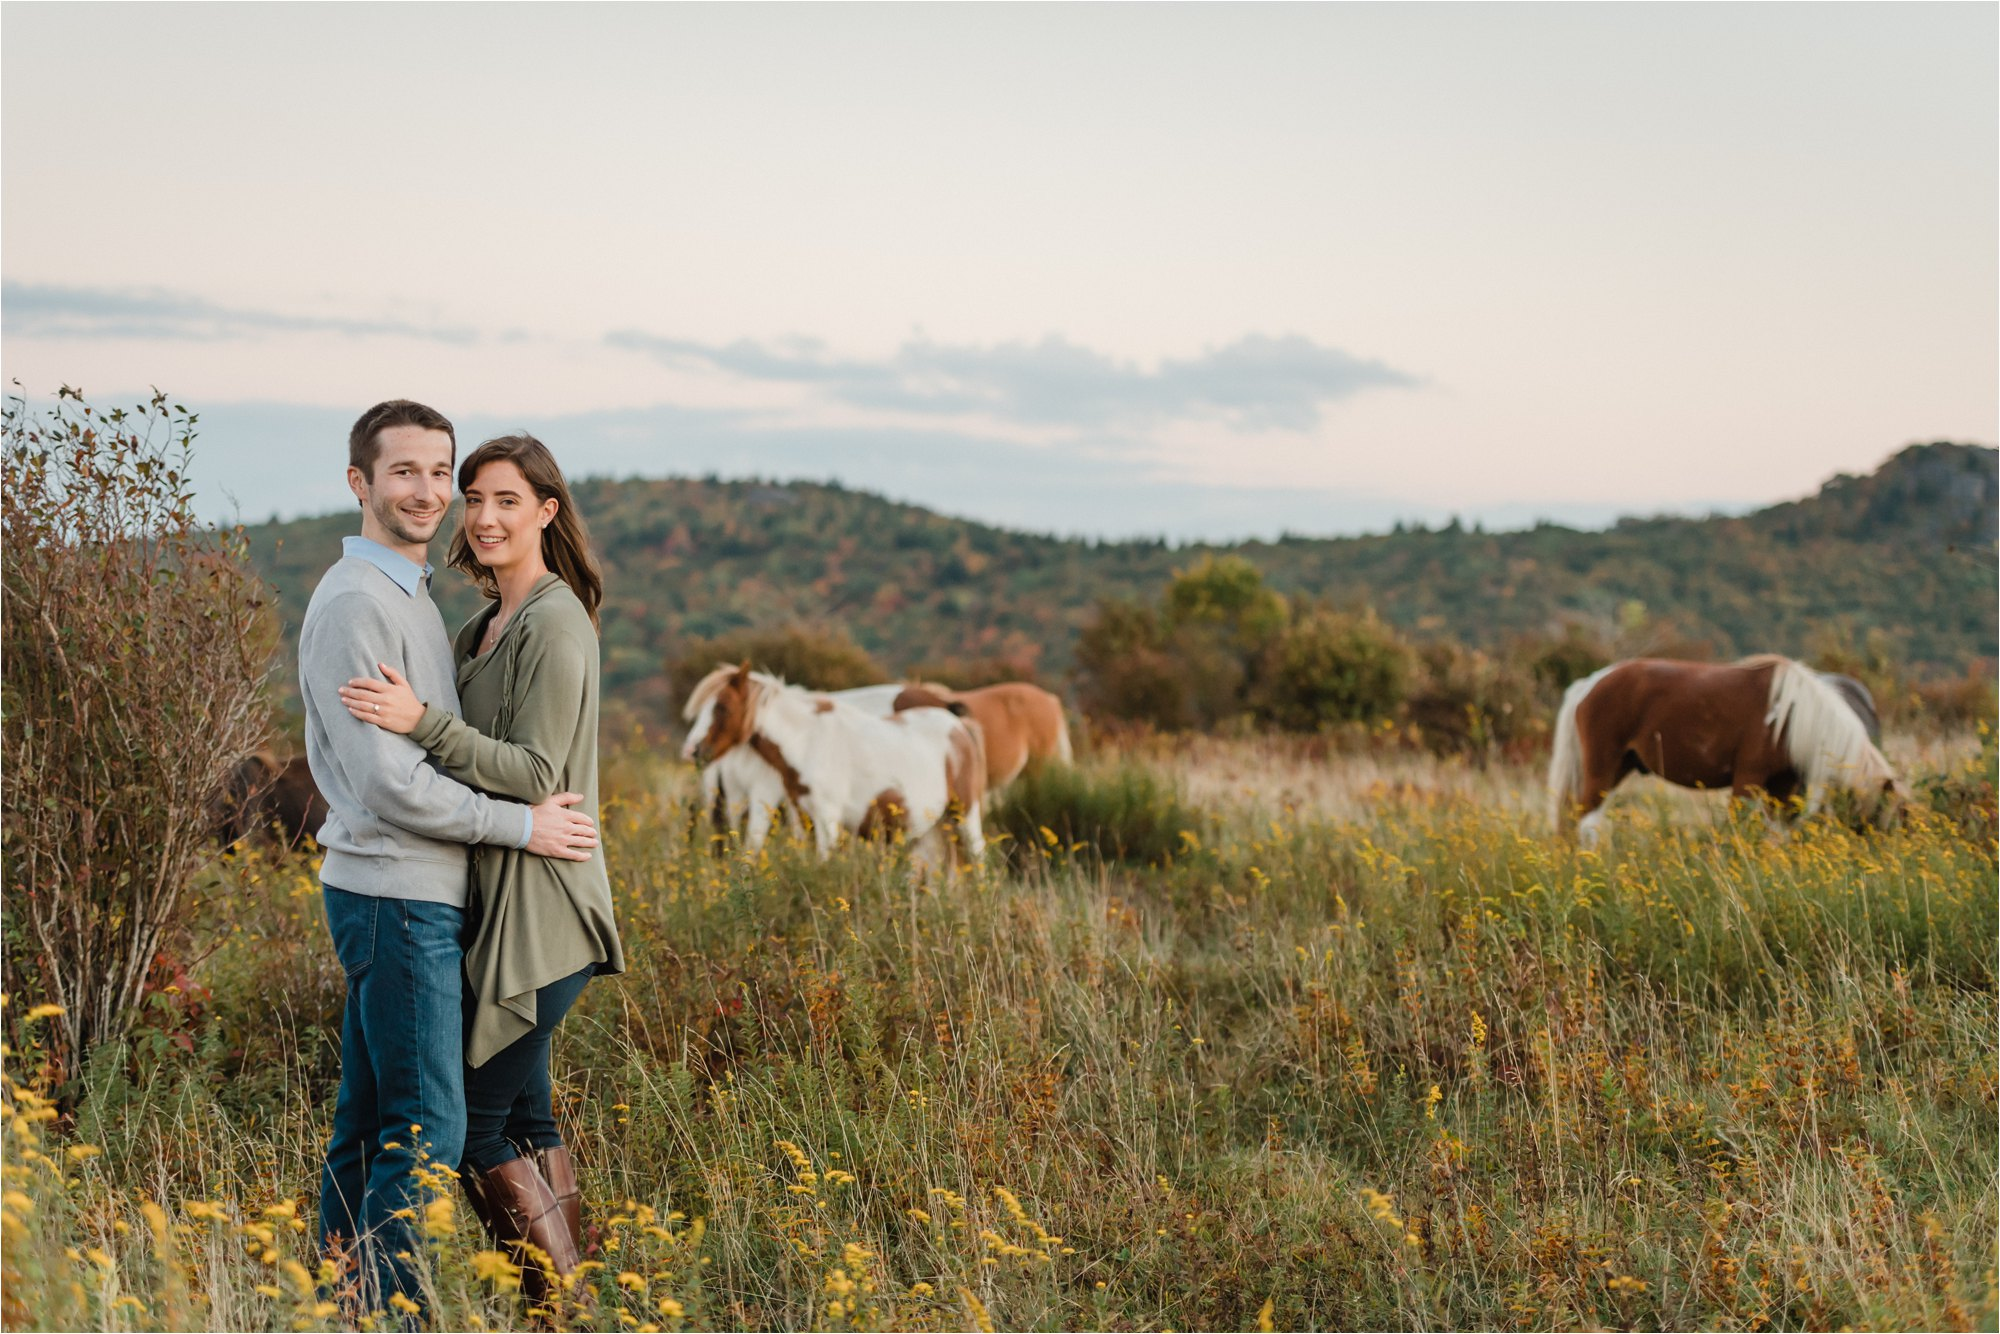 Ponies at Engagement Session at Blue Ridge Mountains